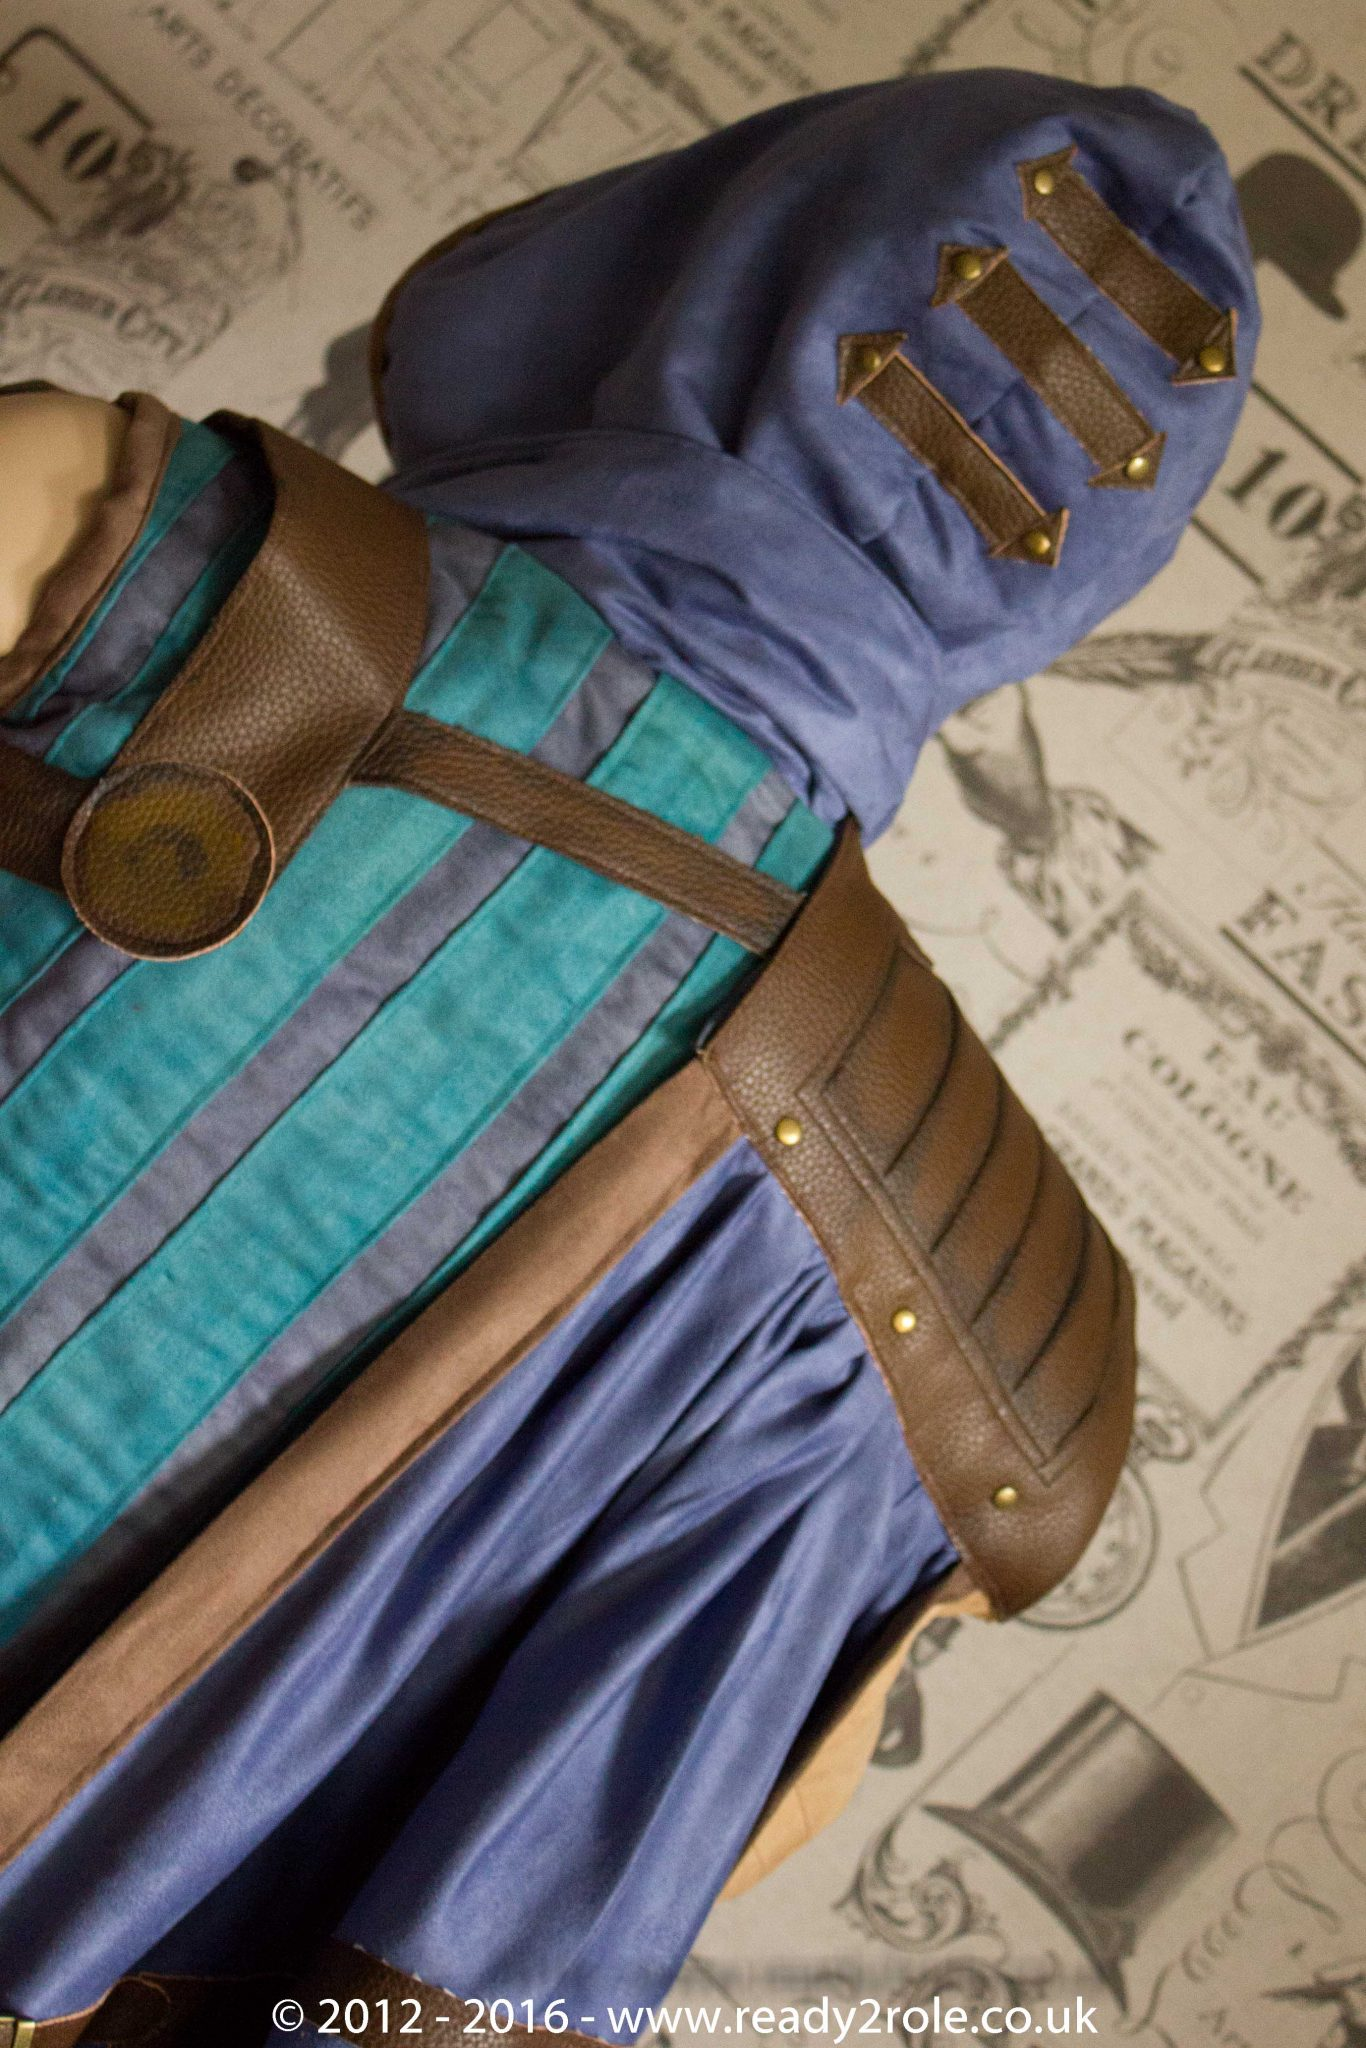 Evie Frye – Assassins Creed Costume – Hand Crafted to Order